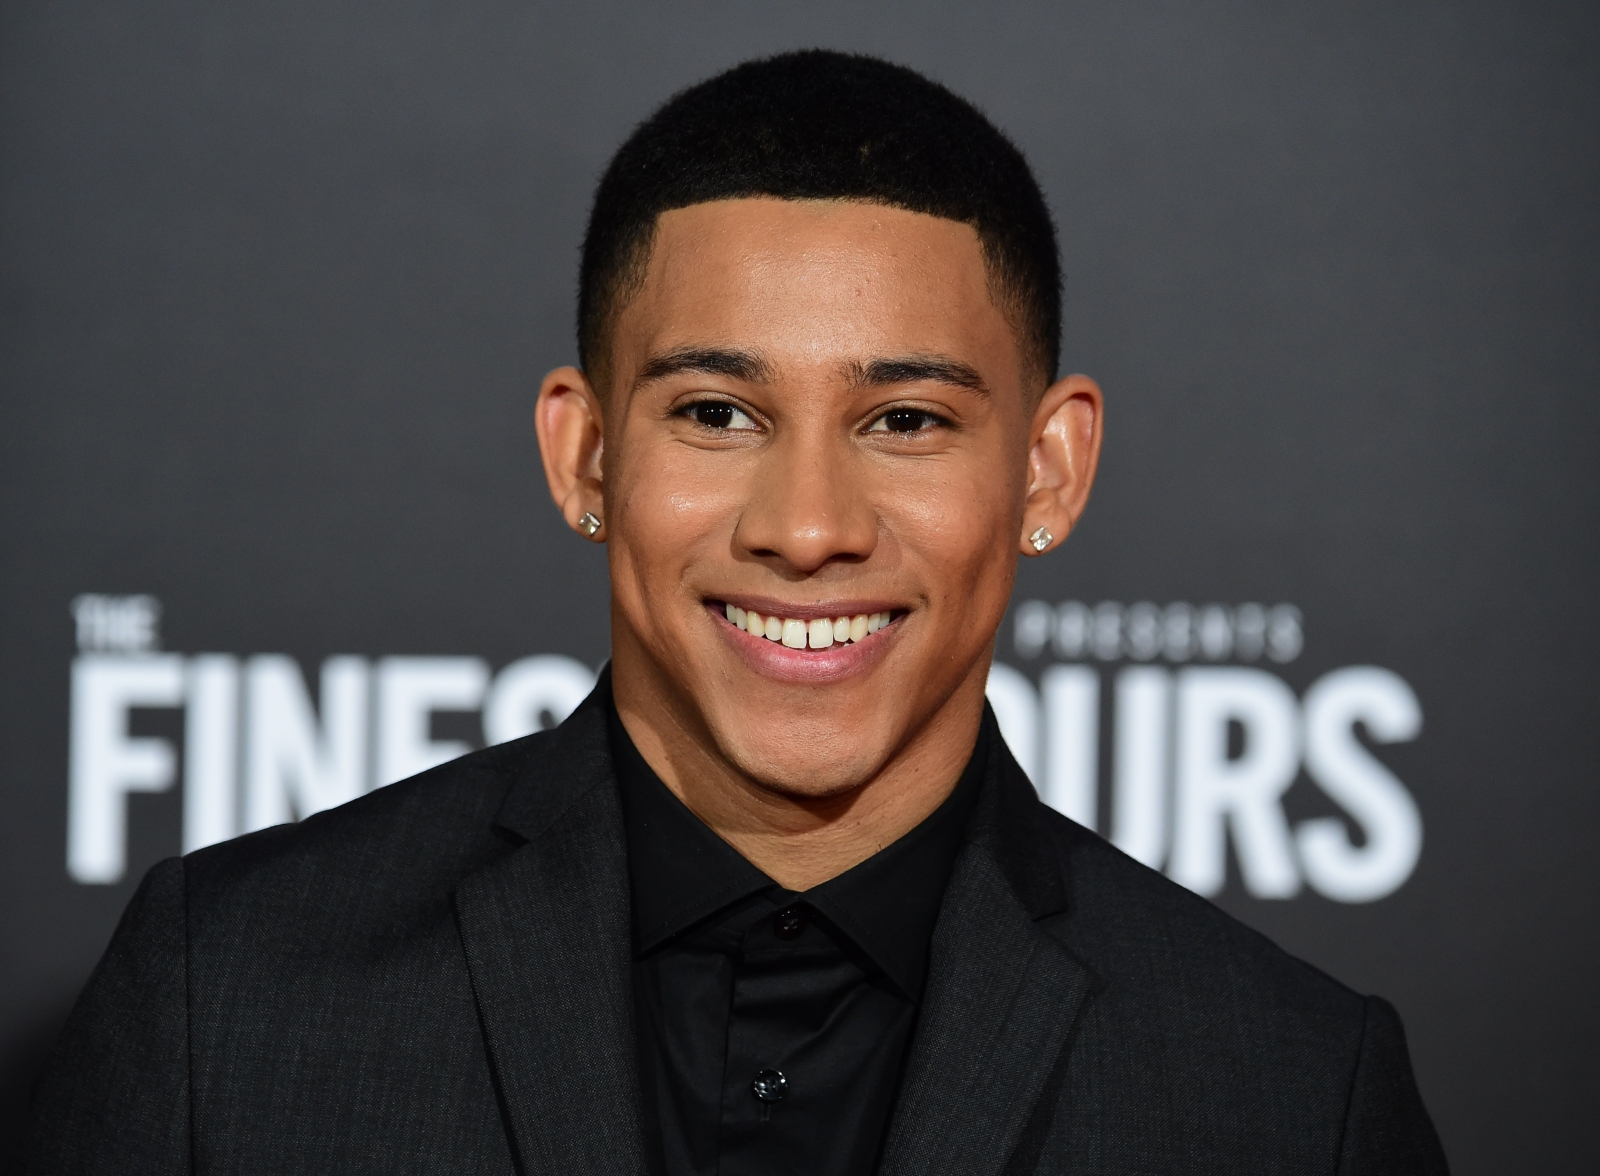 The Flash actor Keiynan Lonsdale just came out as bisexual